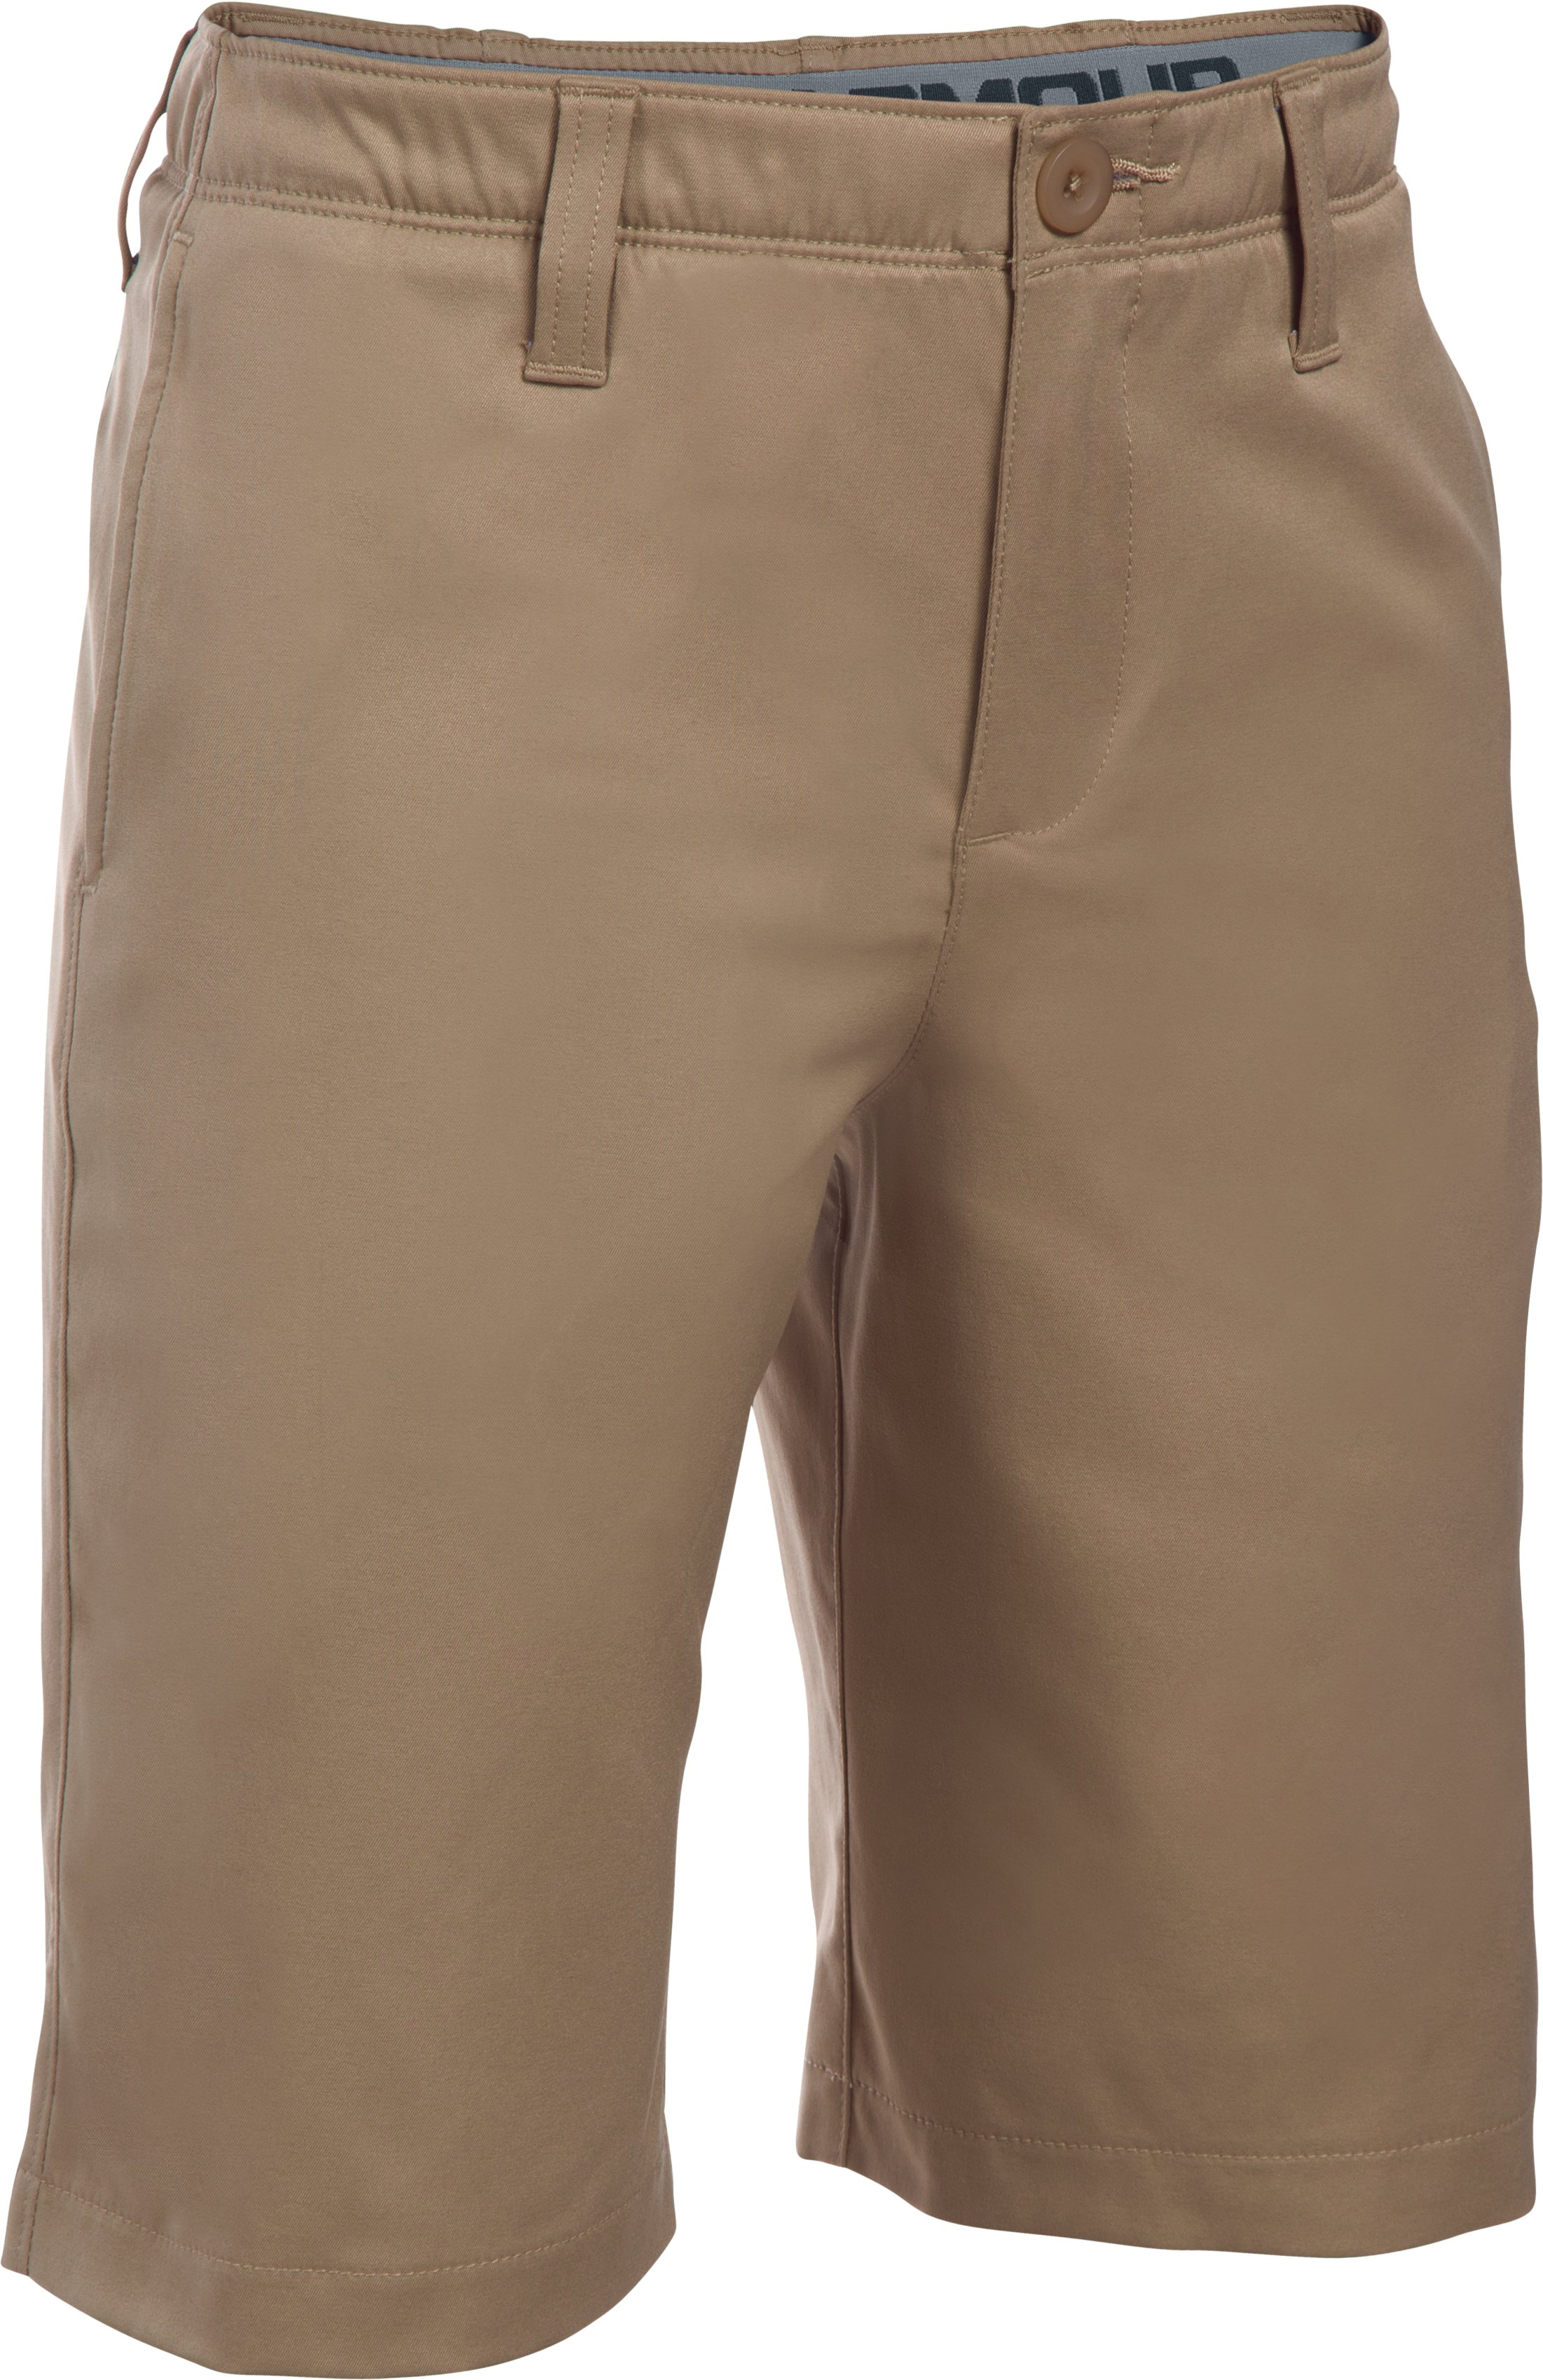 canvas shorts Boys' UA Match Play Shorts Great quality and comfort....What a hit!...Great breathable fabric.